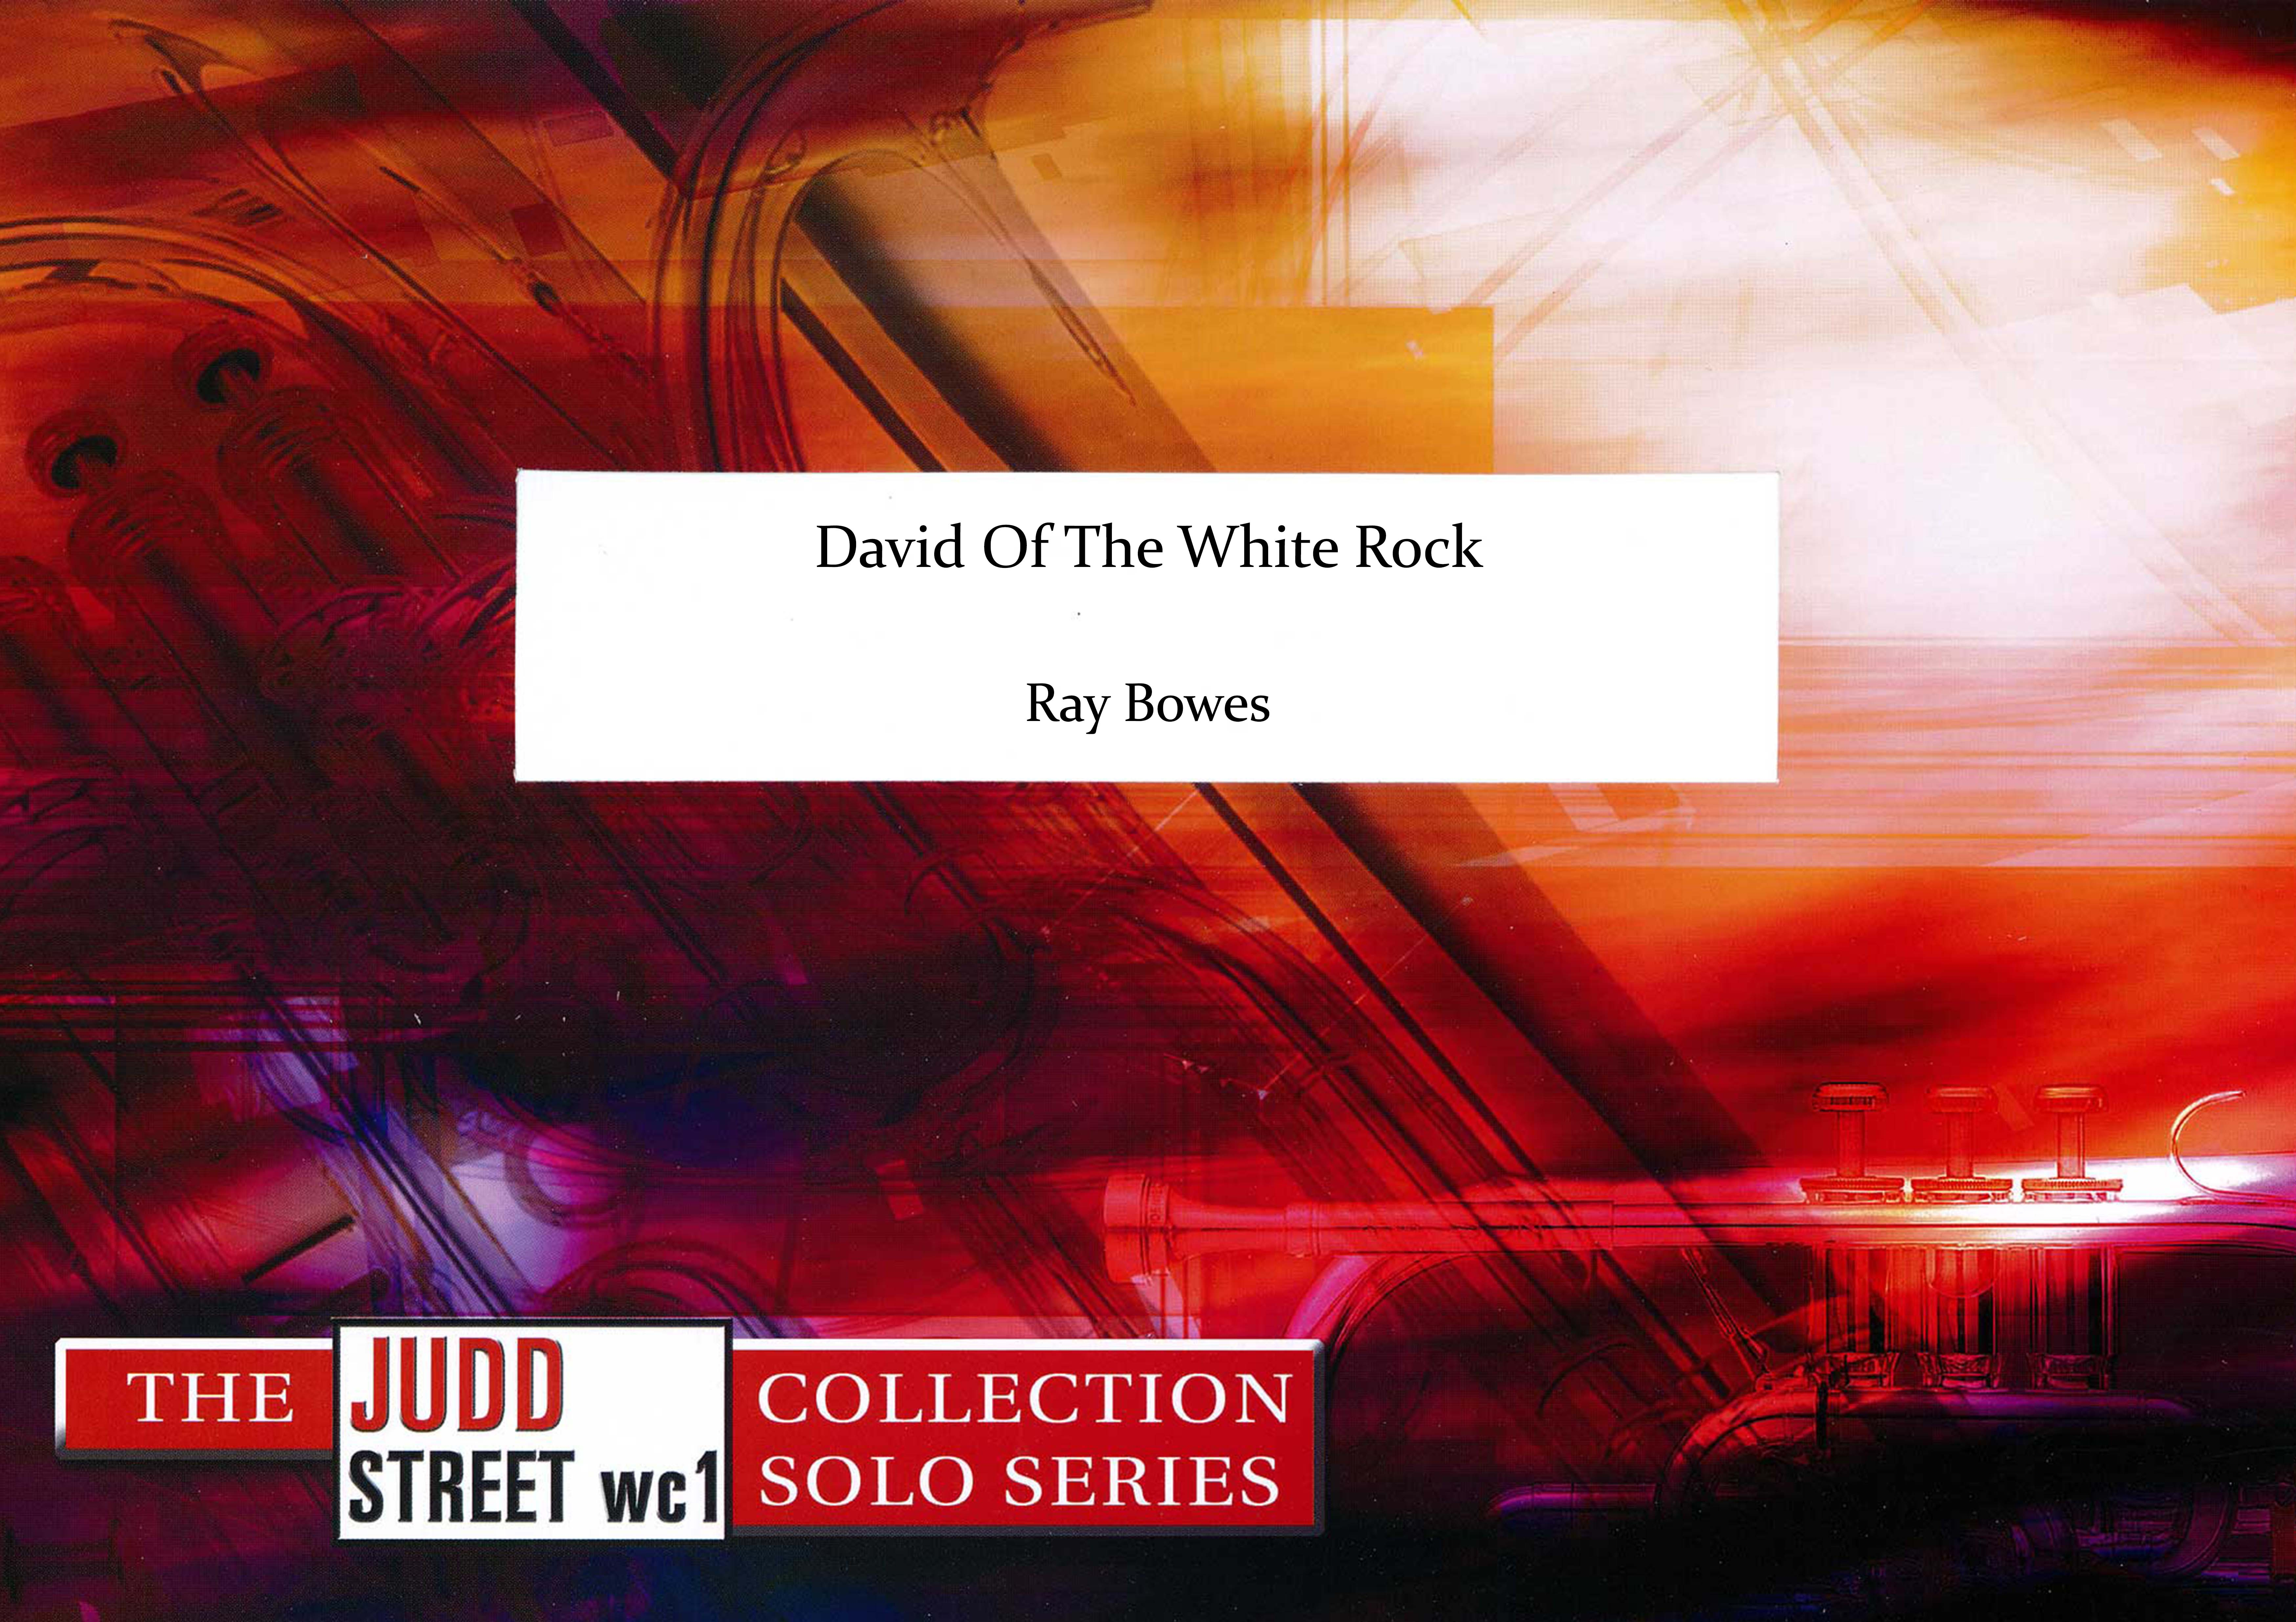 David Of The White Rock (Cornet Solo with Brass Band - Score and Parts)